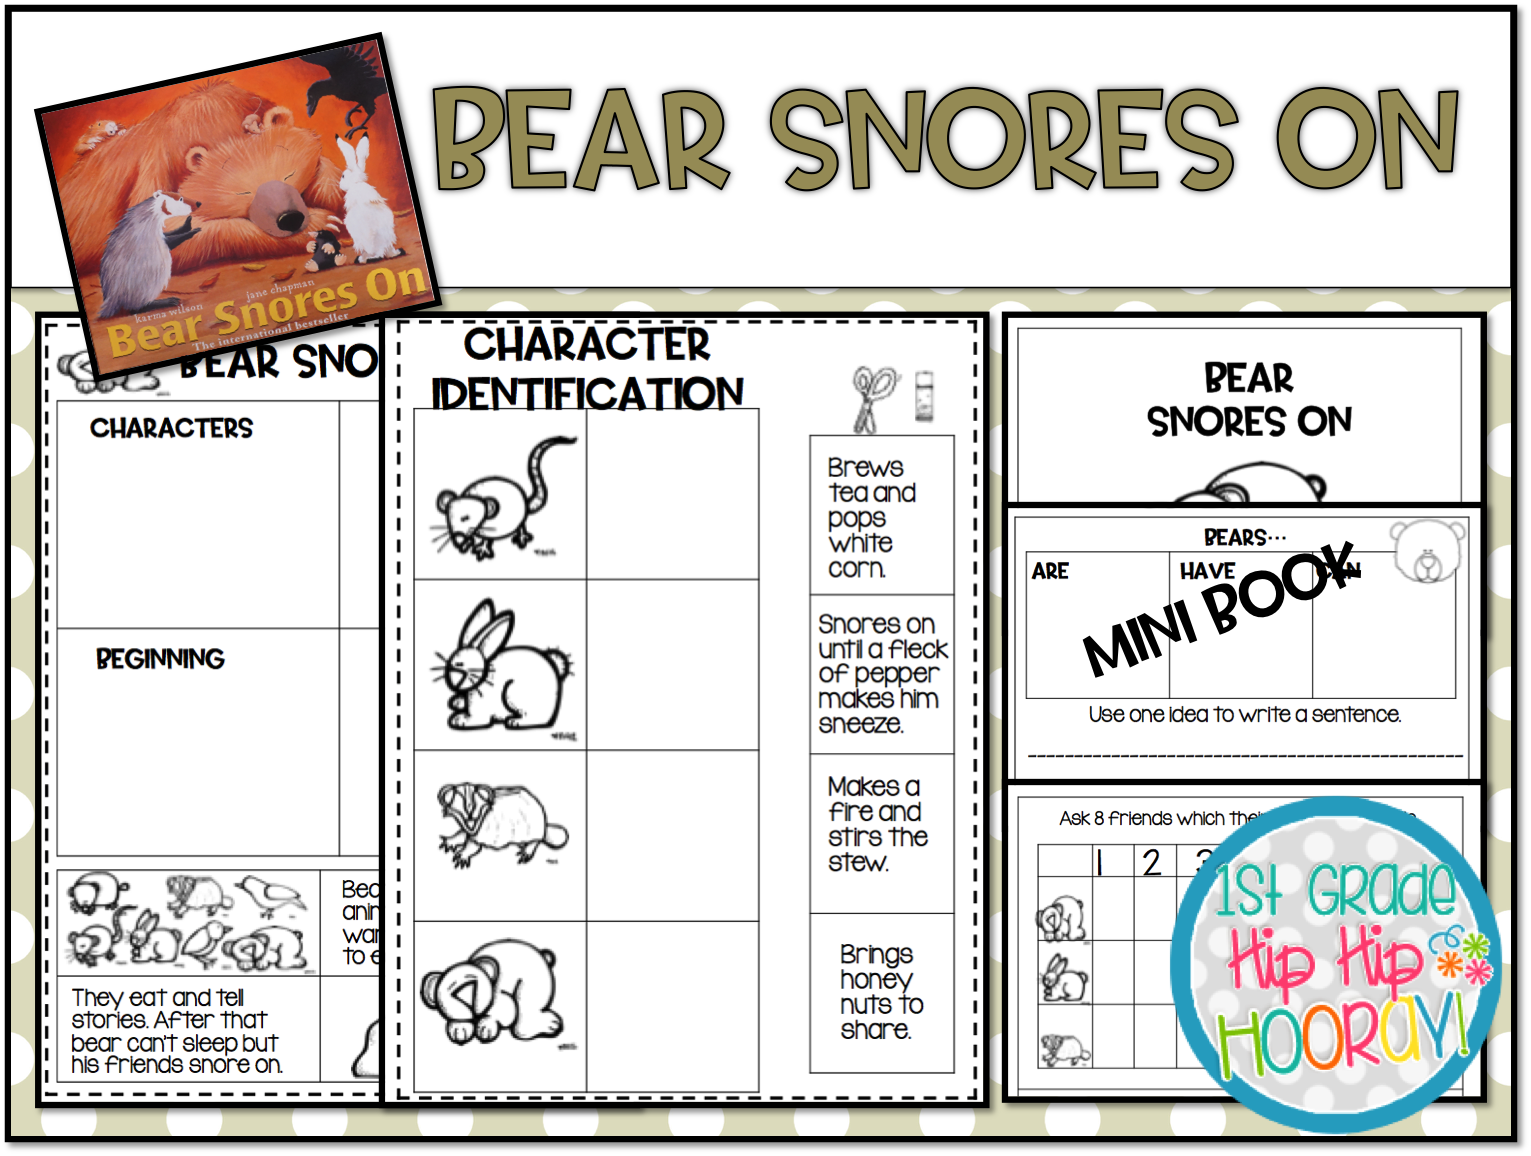 1st Grade Hip Hip Hooray Bear Stories For Fall And Into